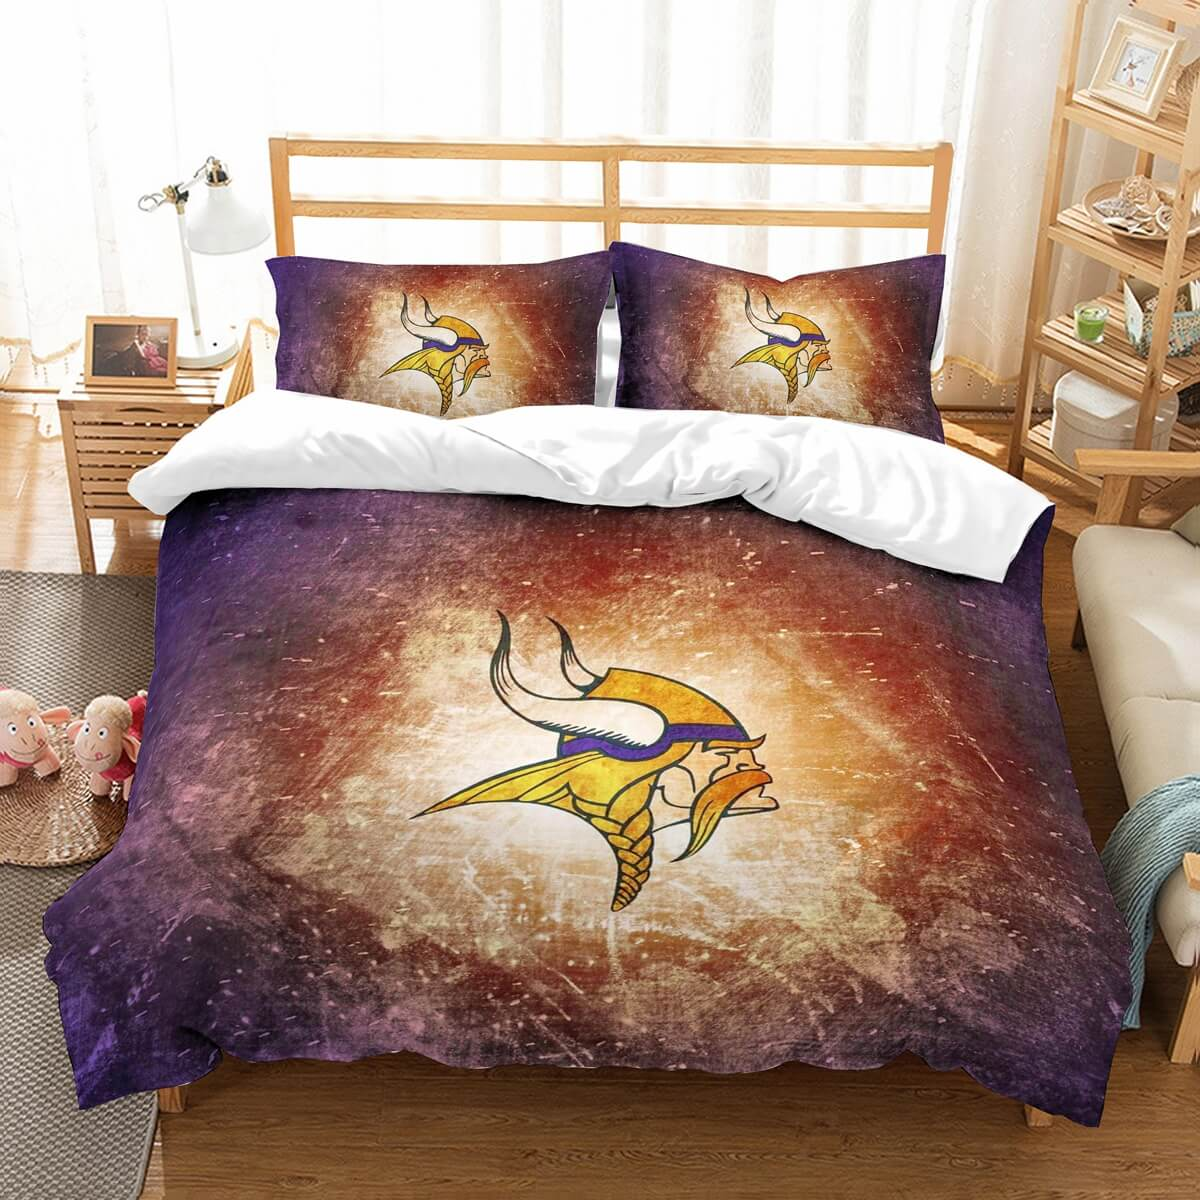 3D Customize Minnesota Vikings Bedding Set Duvet Cover Set Bedroom Set Bedlinen